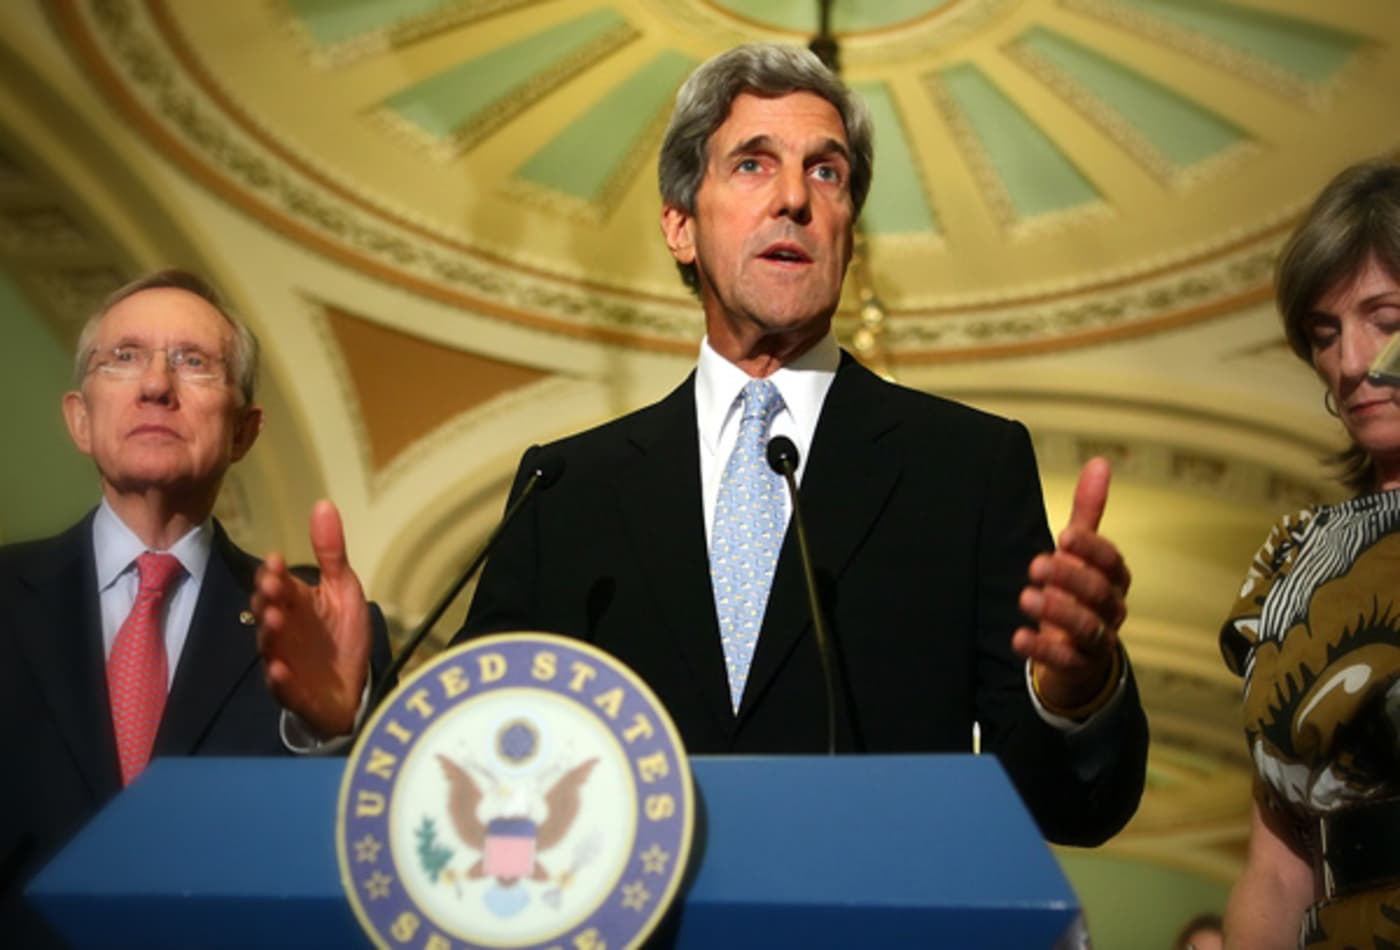 SS_richest_members_congress_2011_kerry.jpg